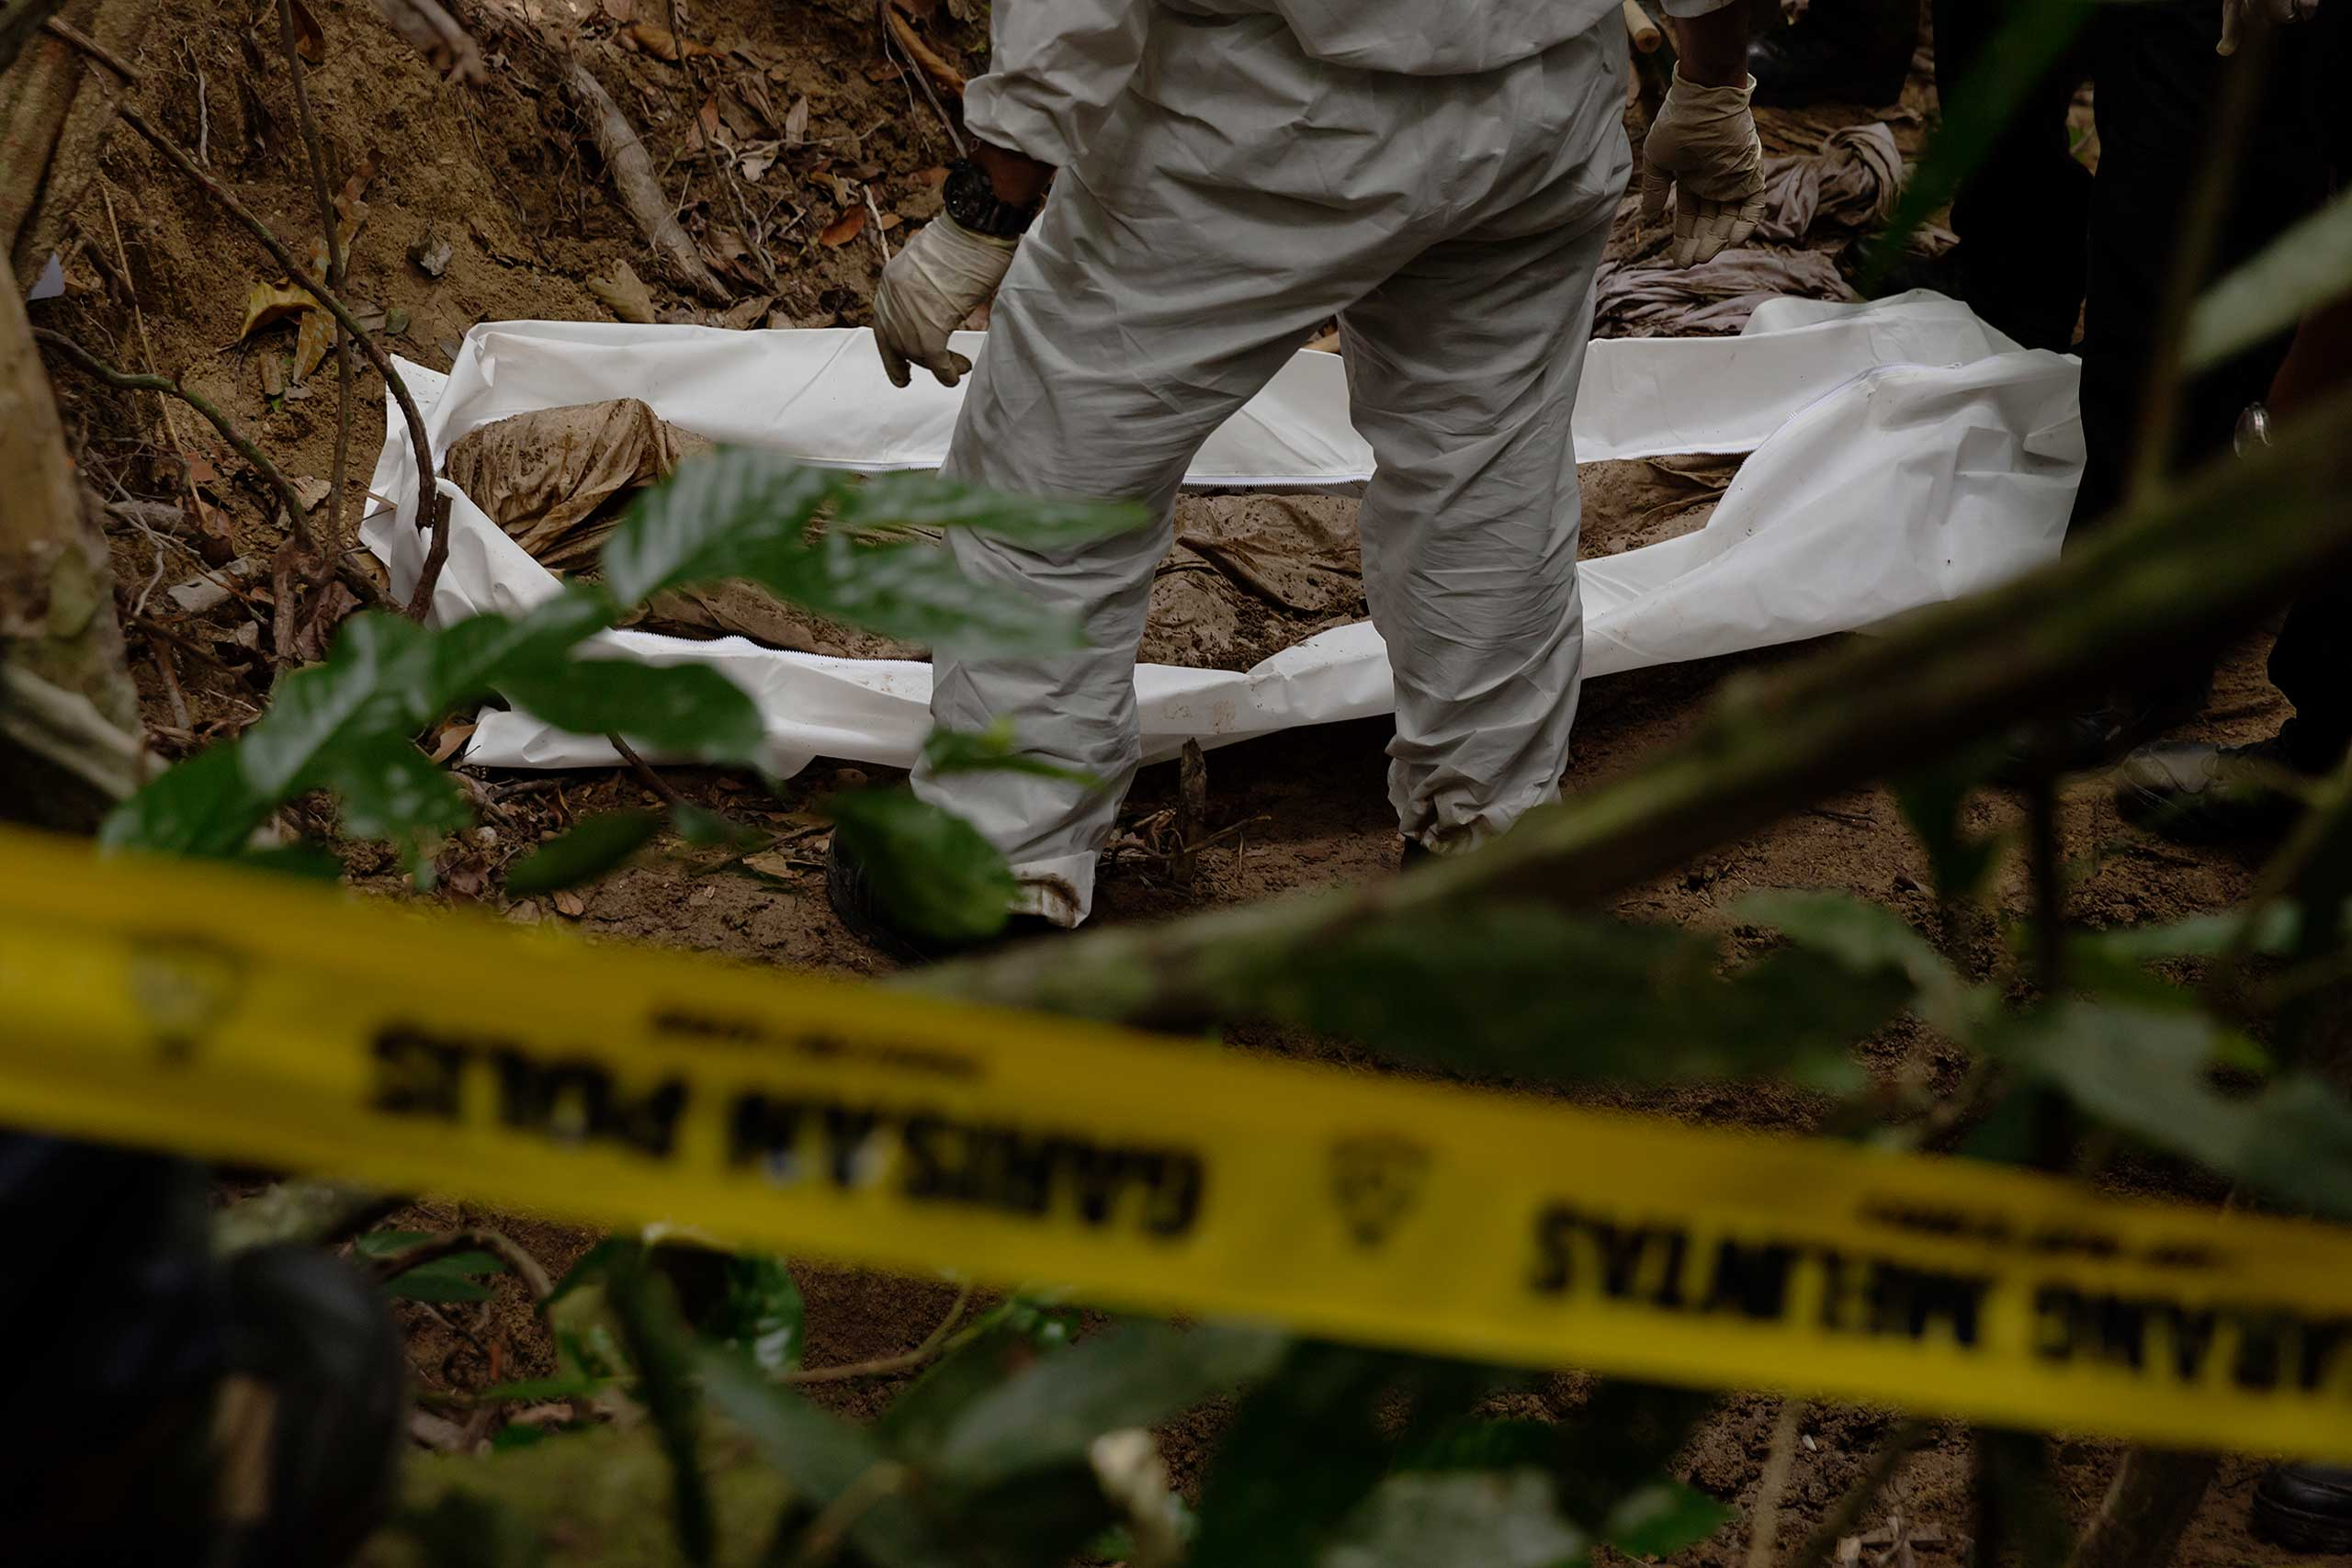 Human remains being disinterred from an informal cemetery near an abandoned camp allegedly for trafficked Rohingya and Bangladeshis in mountainous jungle on the Malaysian side of the Thai-Malaysian border.